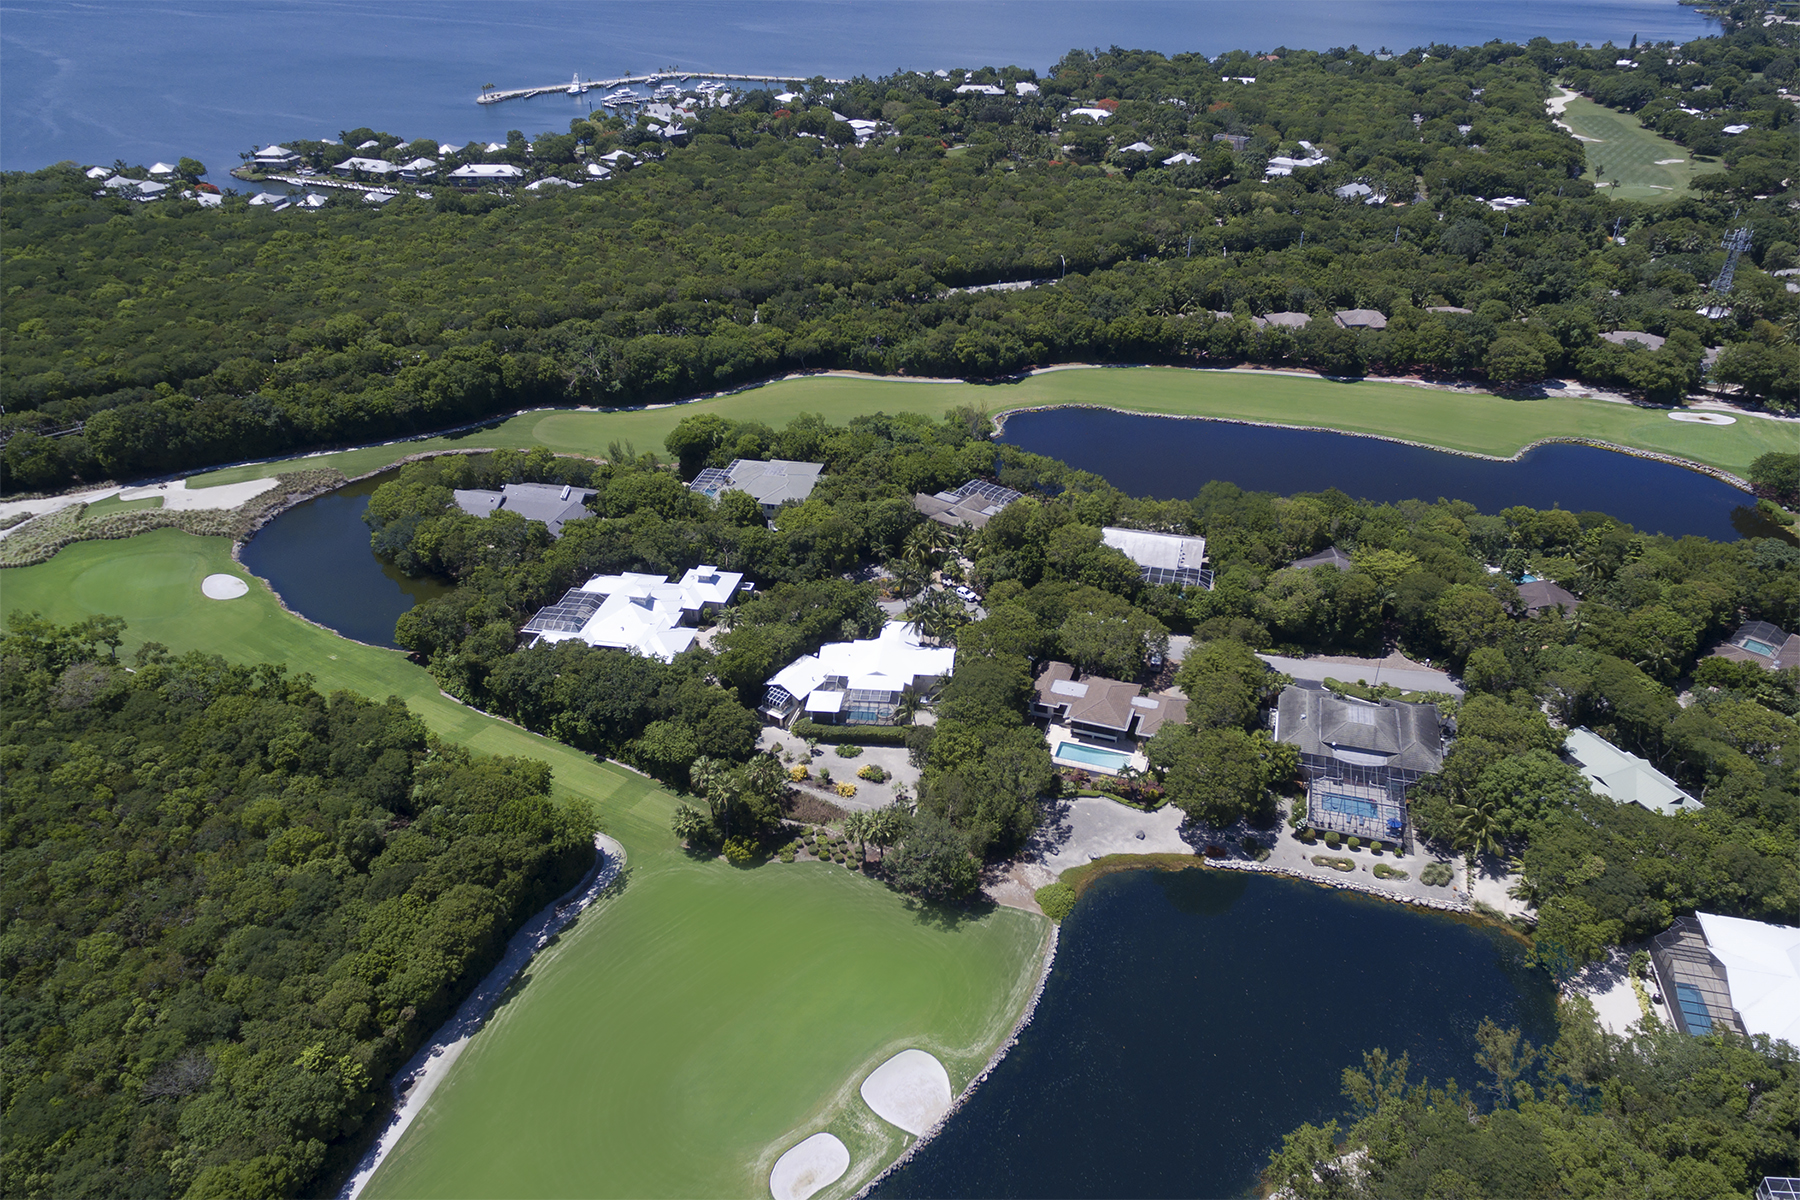 Single Family Home for Sale at Custom Golf Course Home at Ocean Reef 13 Caloosa Road Ocean Reef Community, Key Largo, Florida, 33037 United States